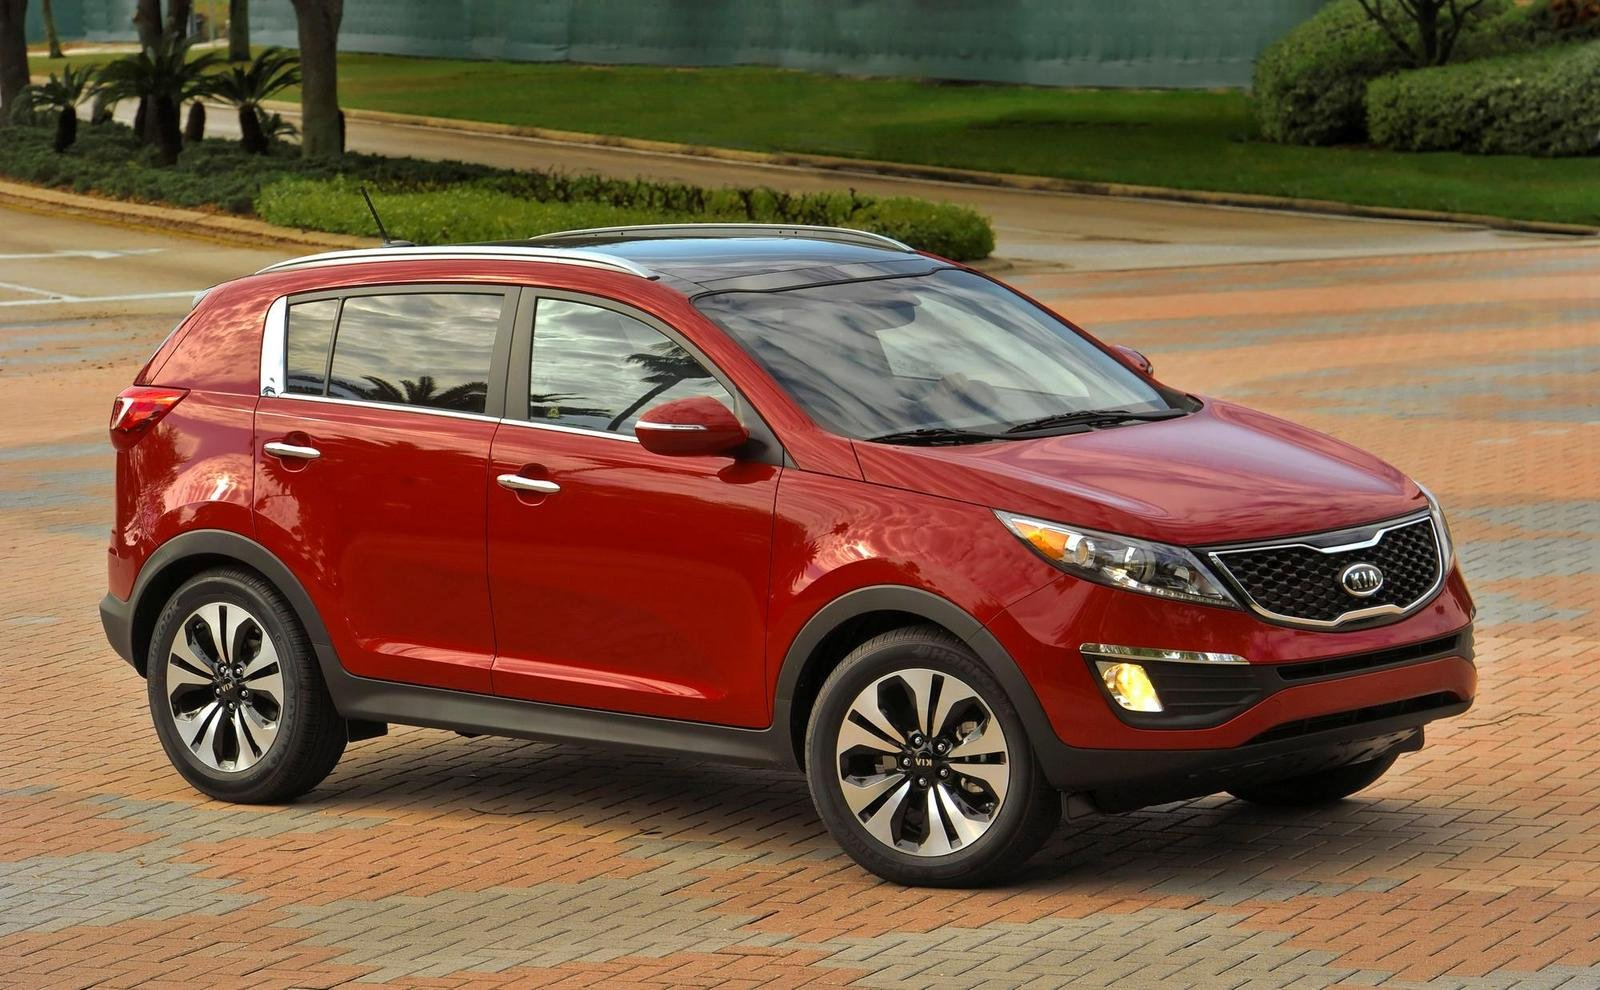 2011 kia sportage sx turbo picture 395180 car review top speed. Black Bedroom Furniture Sets. Home Design Ideas